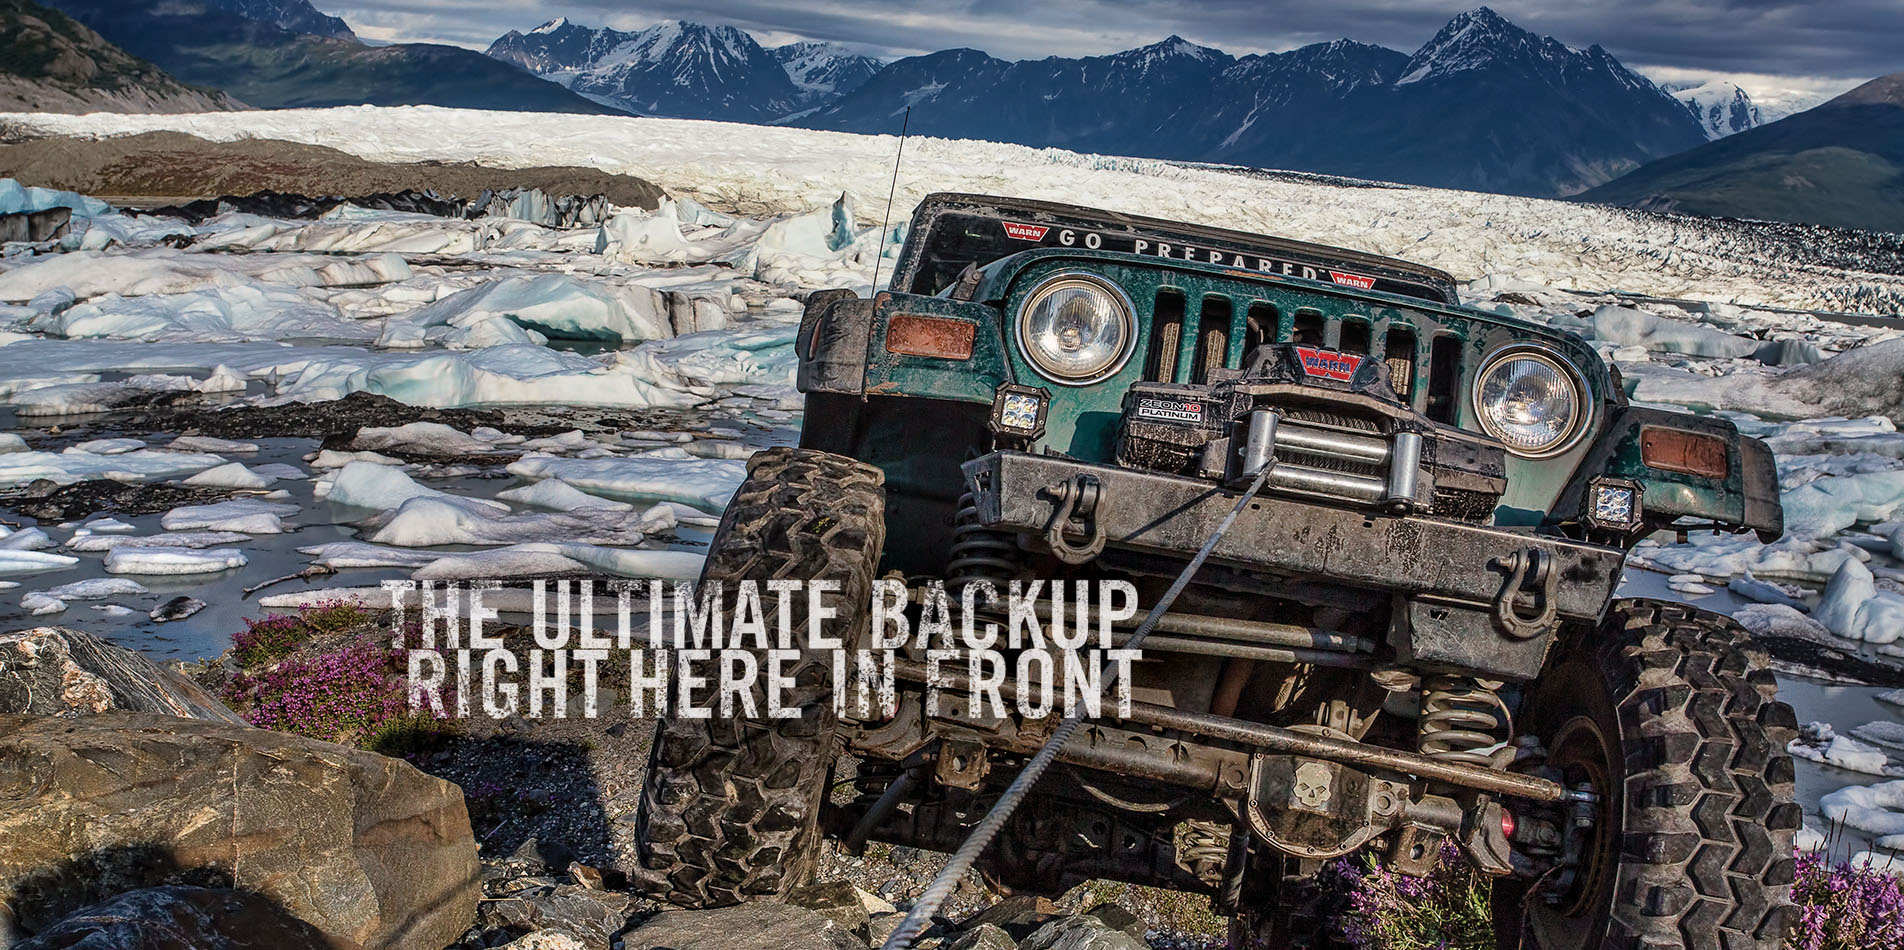 Warn Industries, Electric Winches, Buy Winches, Winches, Hub, Hubs, Warn Winch, Warn Winches, Warn Hubs, Light, Lights, 4WD Equipment, 4WD, Jeep winches, Off Road Products, Off Road, OEM Powertrain, OEM, Powertrain, Body Armor, ATV Winch, ATV Winches, ATV Bumpers, ATV Plow, ATV Snow Plow, Warn Works, Trans4mer, Hidden Kit, atv accessories,hunting, farming, ranching, quad, utv, all terrain vehicle,Side x Side.